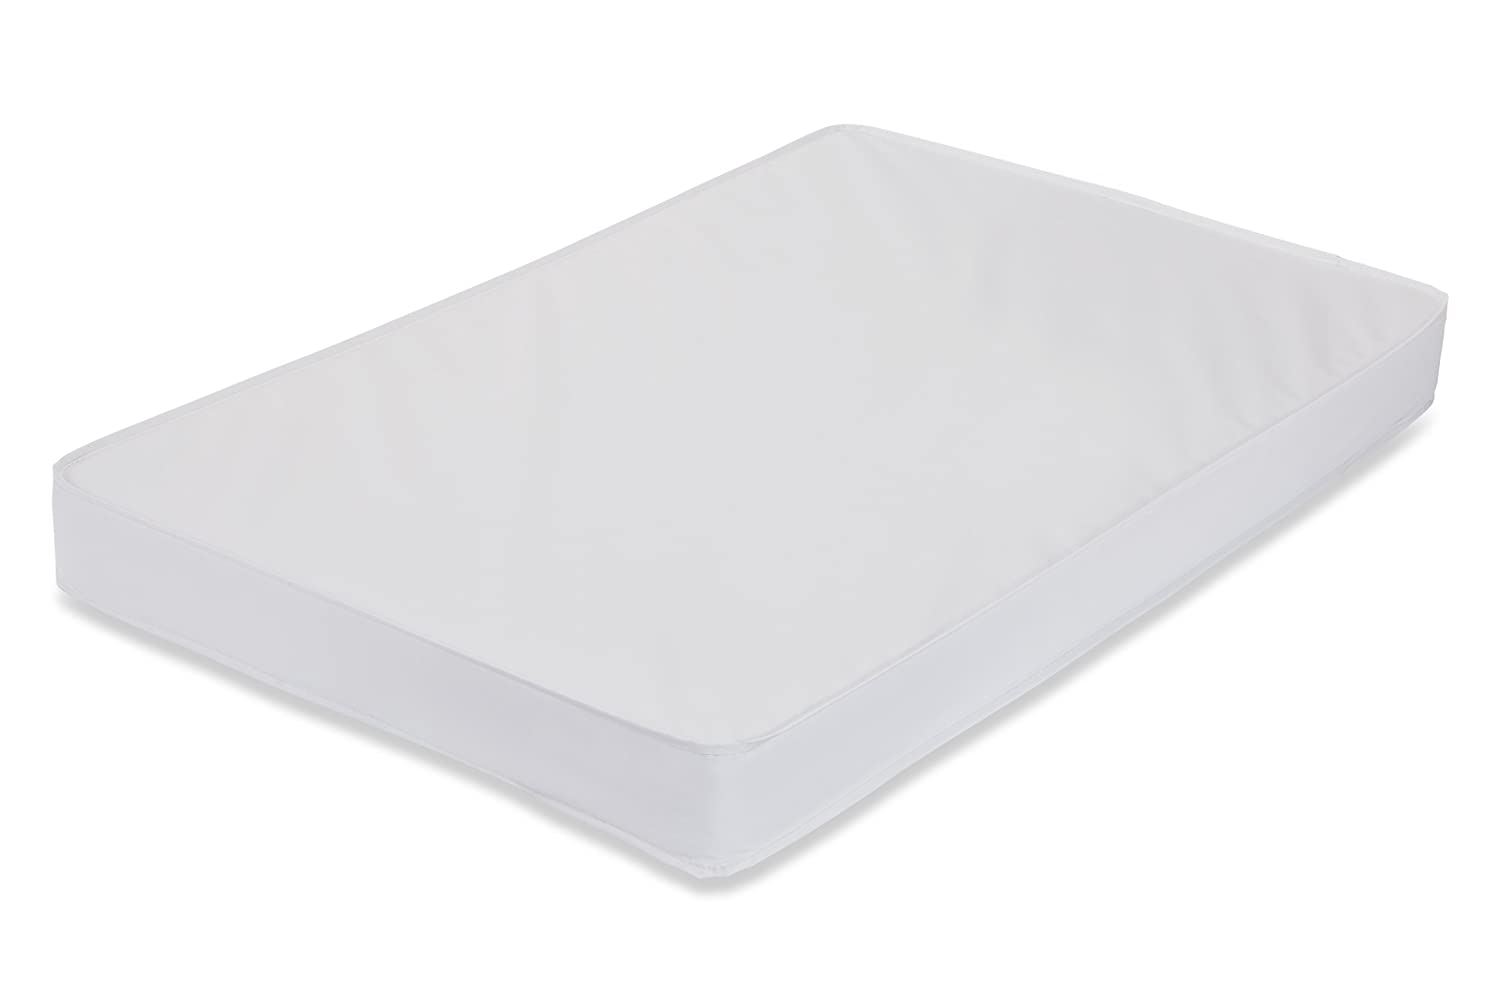 "LA Baby 3"" Waterproof Mini/Portable Crib Mattress Pad with Easy to Clean Cover, for Non-Full Size Cribs Only - Made in USA"